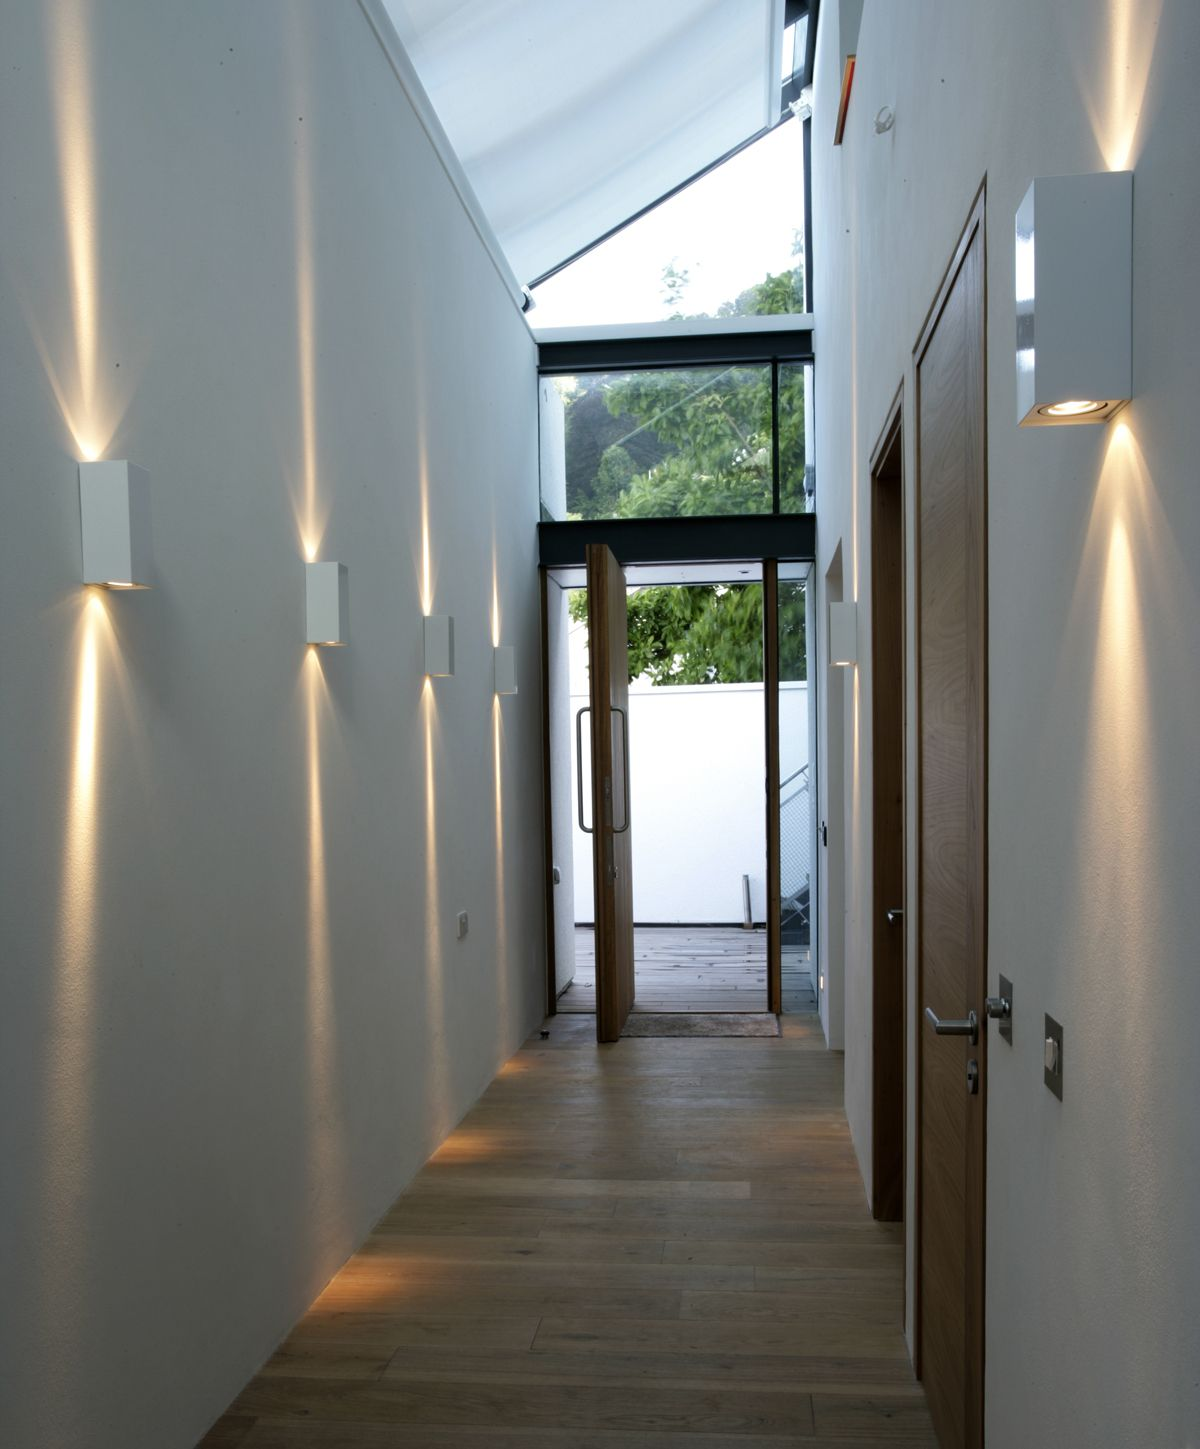 100 Best Corridors Stairs Lighting Images By John: Lighting Design By John Cullen Lighting